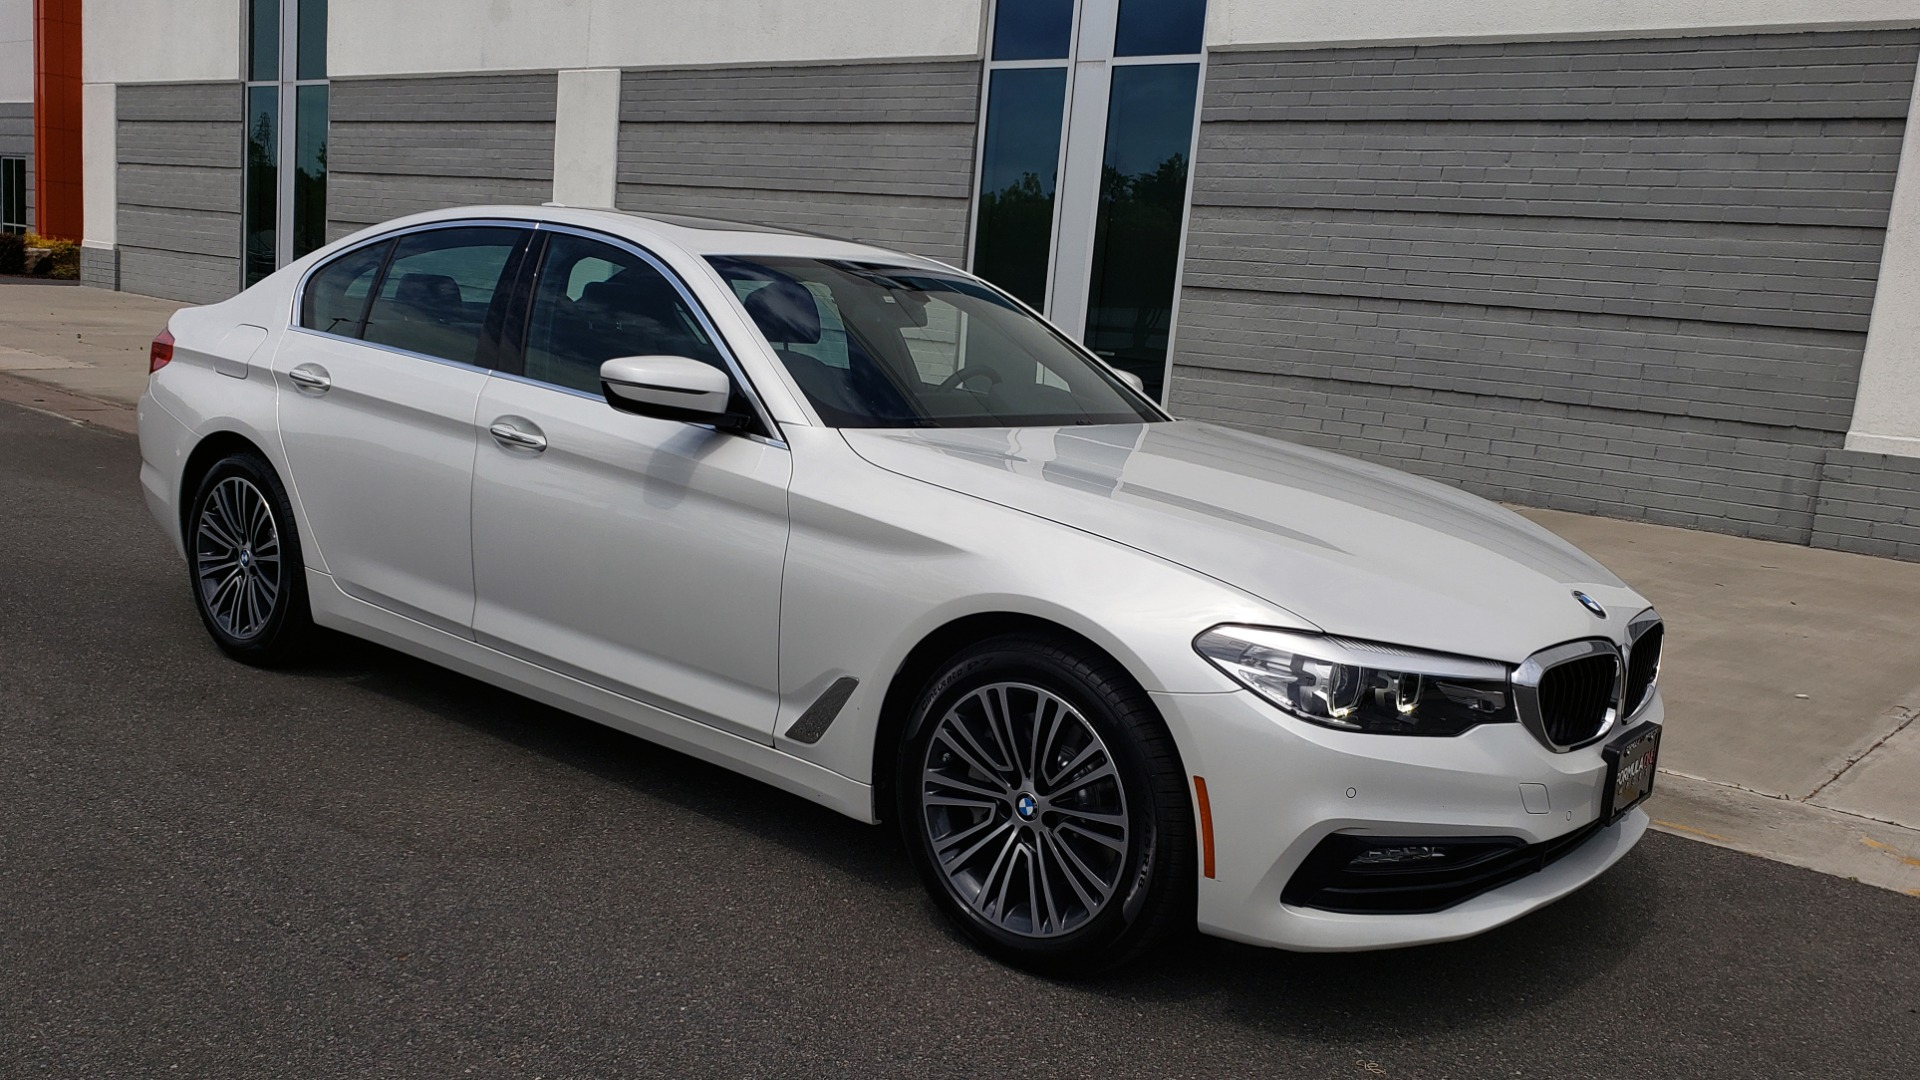 Used 2018 BMW 5 SERIES 530I XDRIVE PREMIUM / NAV / DRVR ASST / PARK ASST / H/K SND for sale $32,795 at Formula Imports in Charlotte NC 28227 9